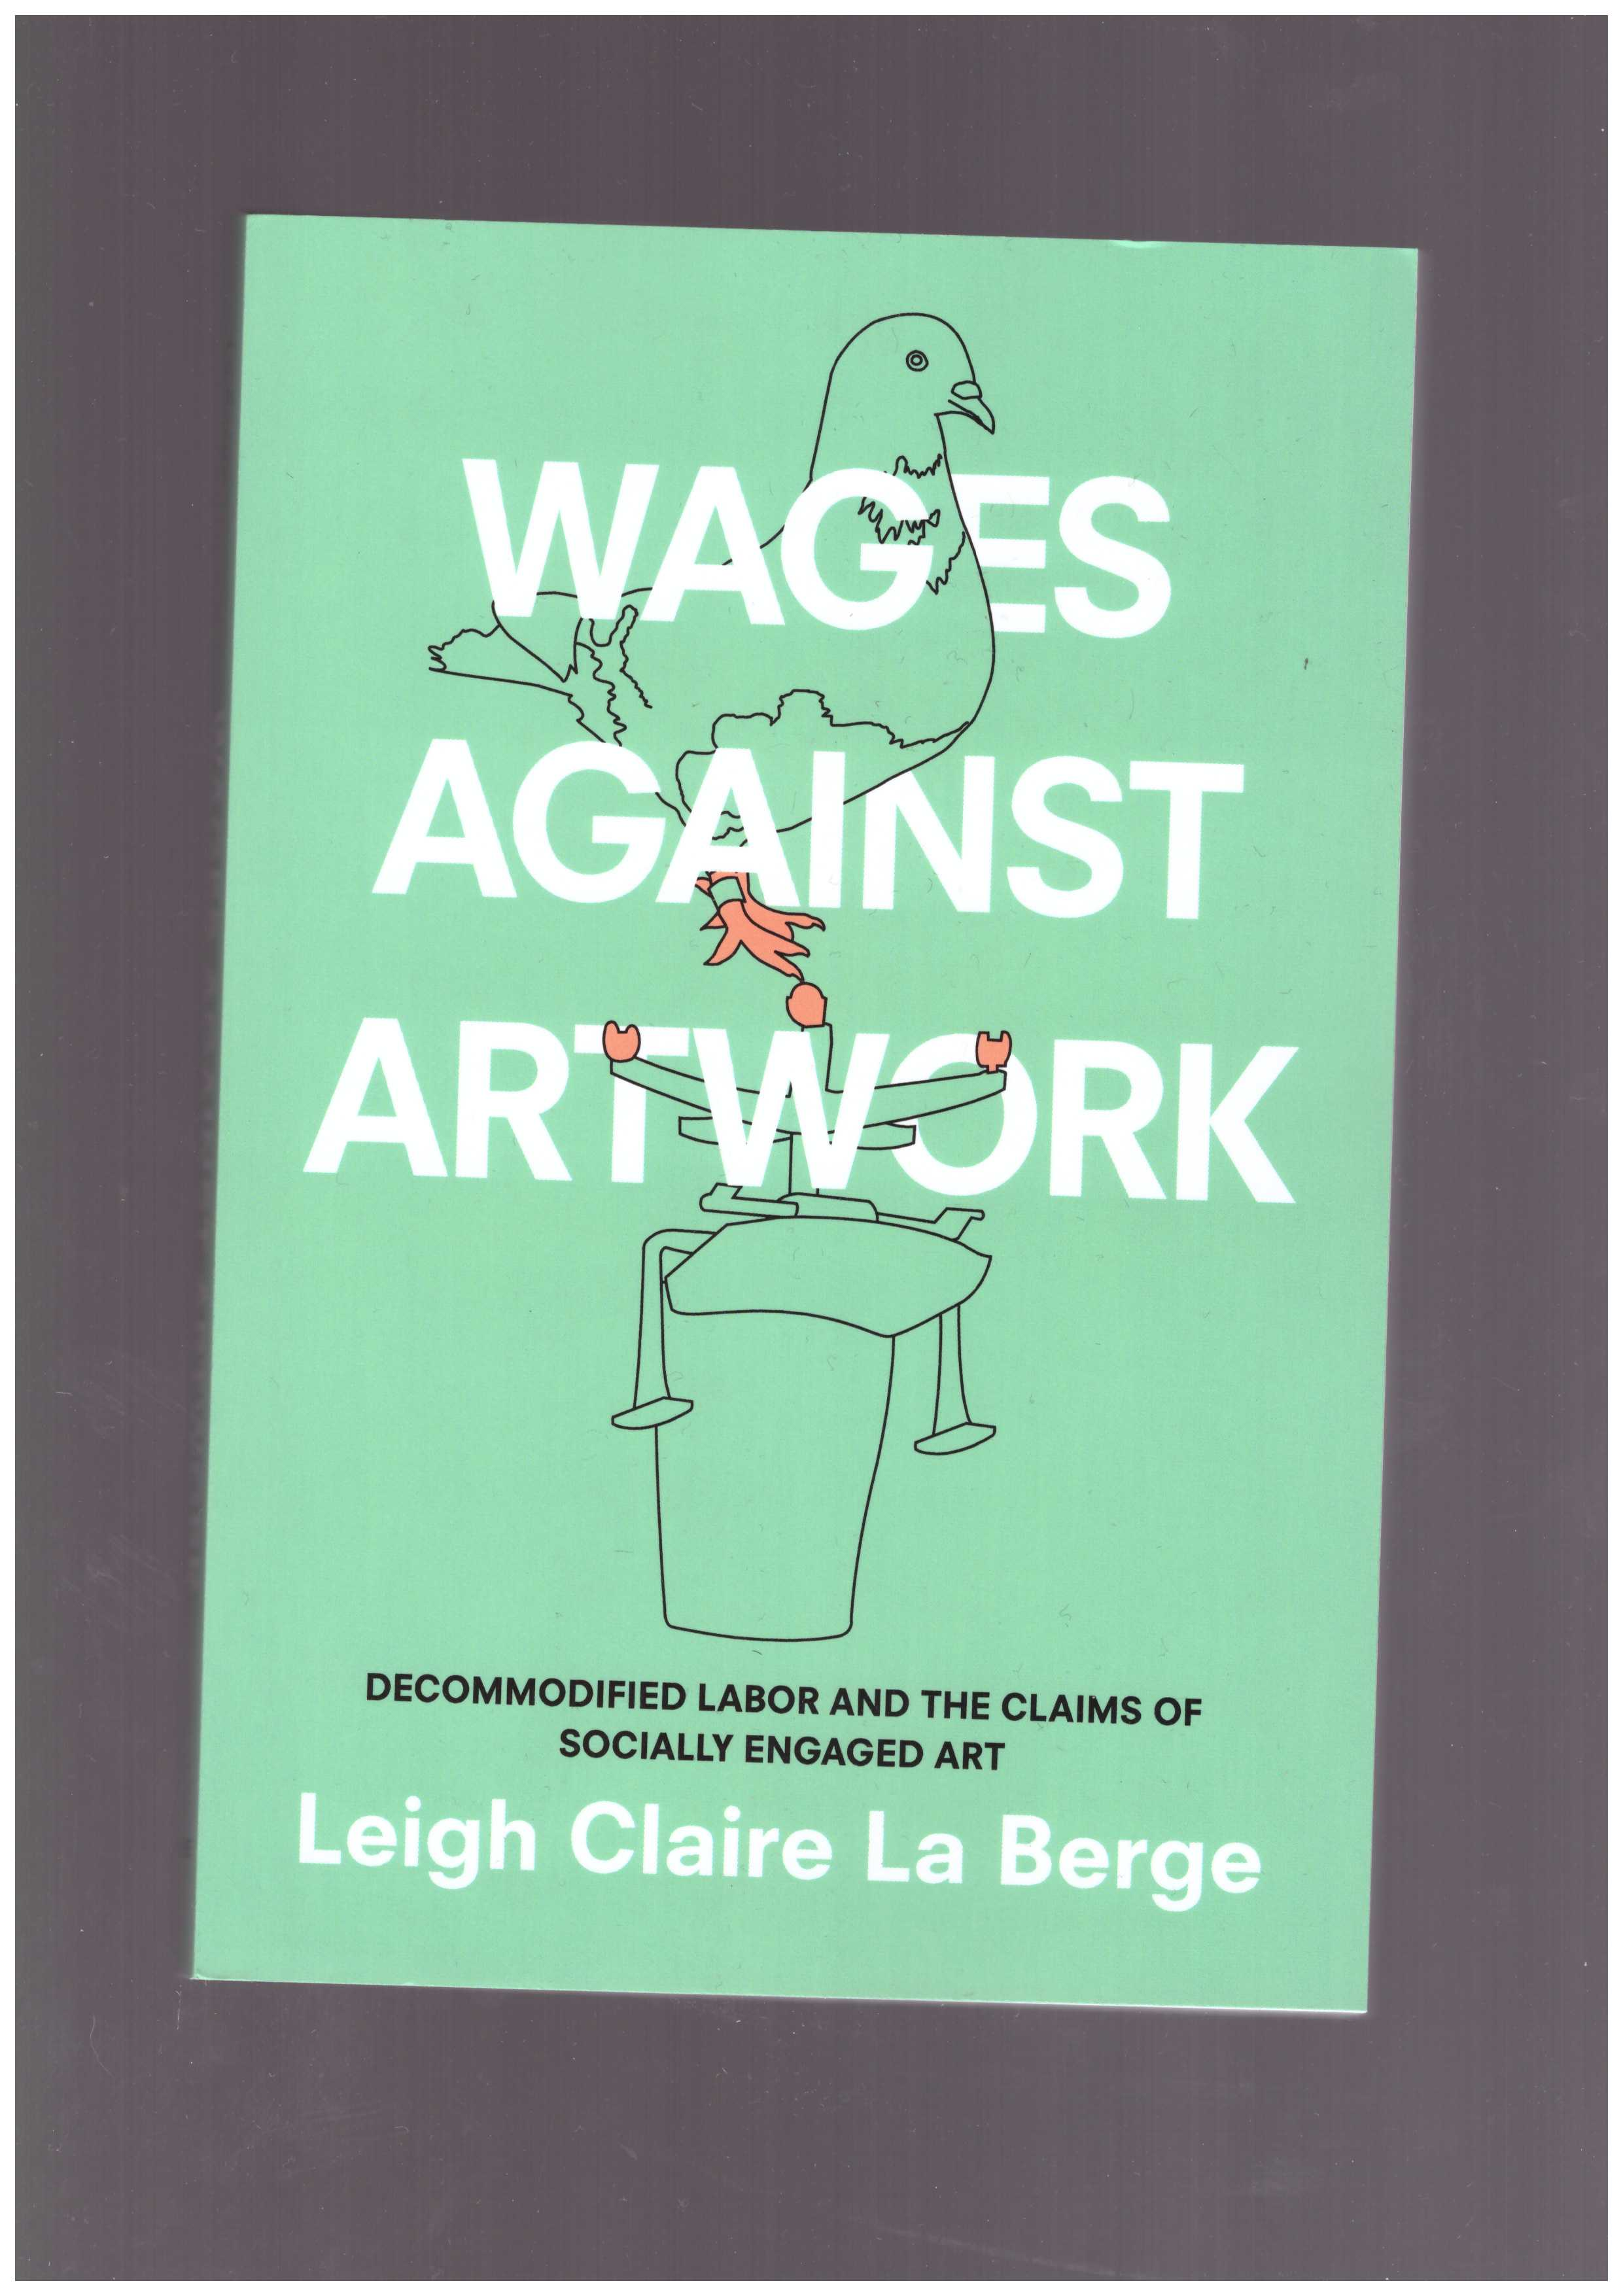 LA BERGE, Leigh Claire - Wages Against Artwork. Decommodified Labor and the Claims of Socially Engaged Art